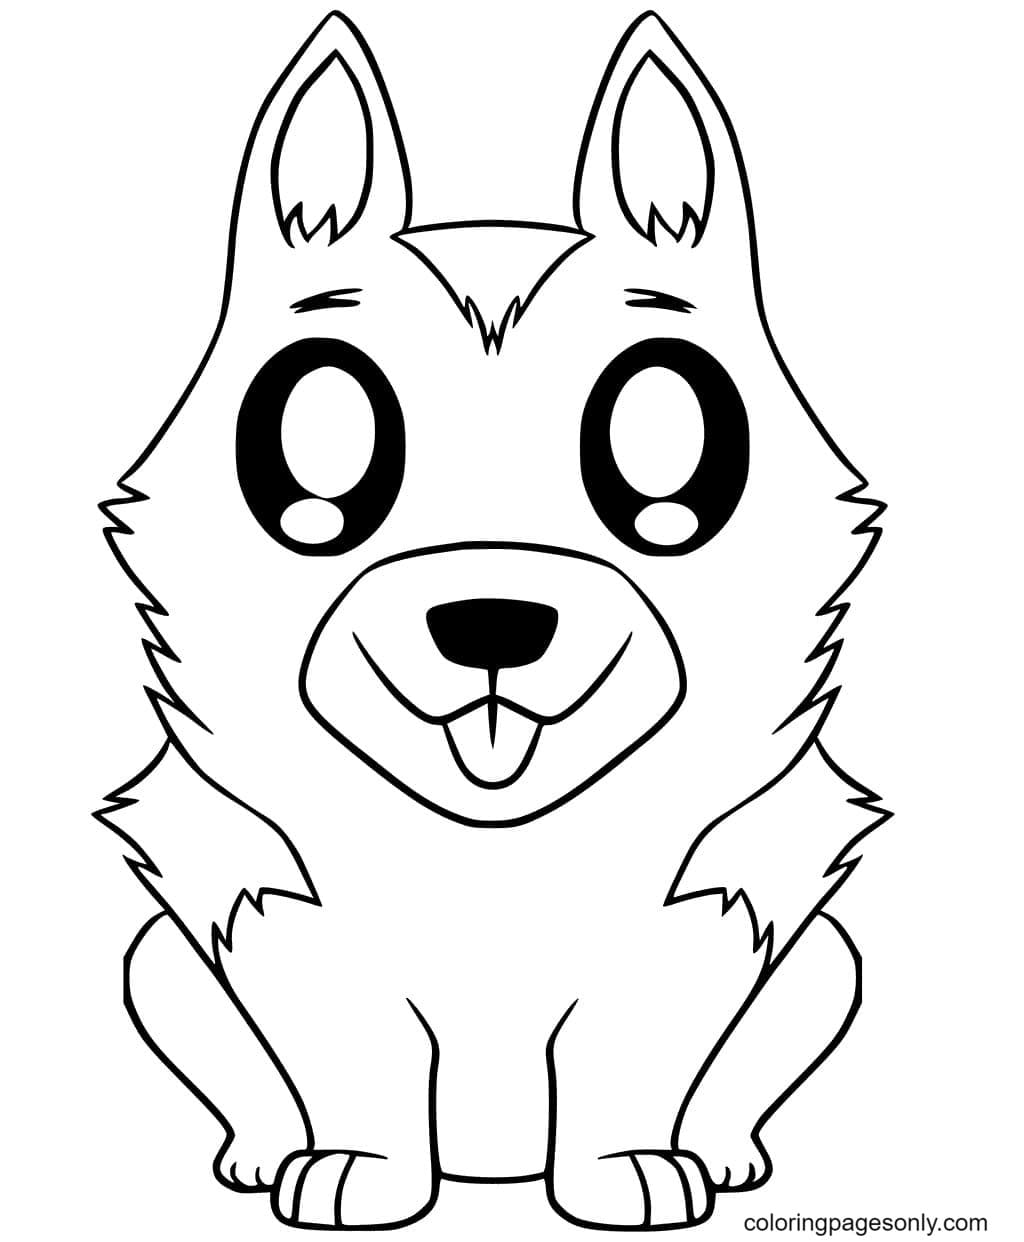 cute german shepherd puppy coloring for kids and adults commandments art projects coloring pages German Shepherd Coloring Page